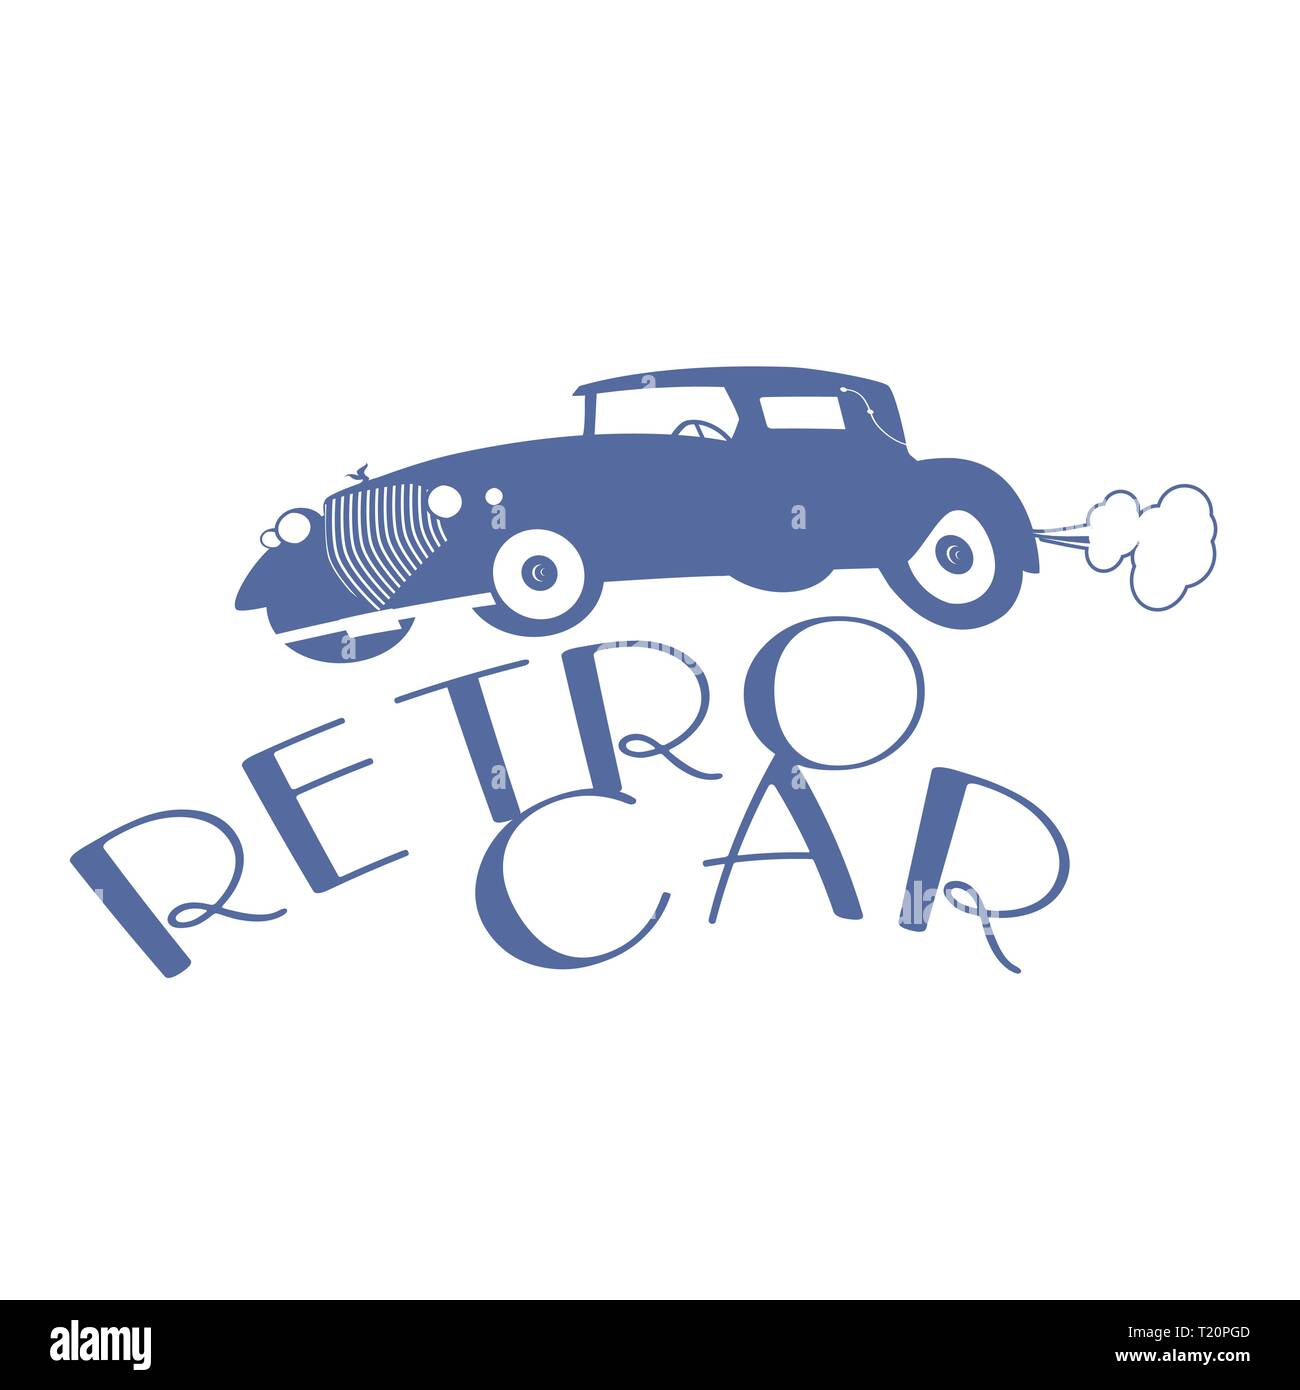 Retro style emblem representing a typical car from the 20s - Stock Vector